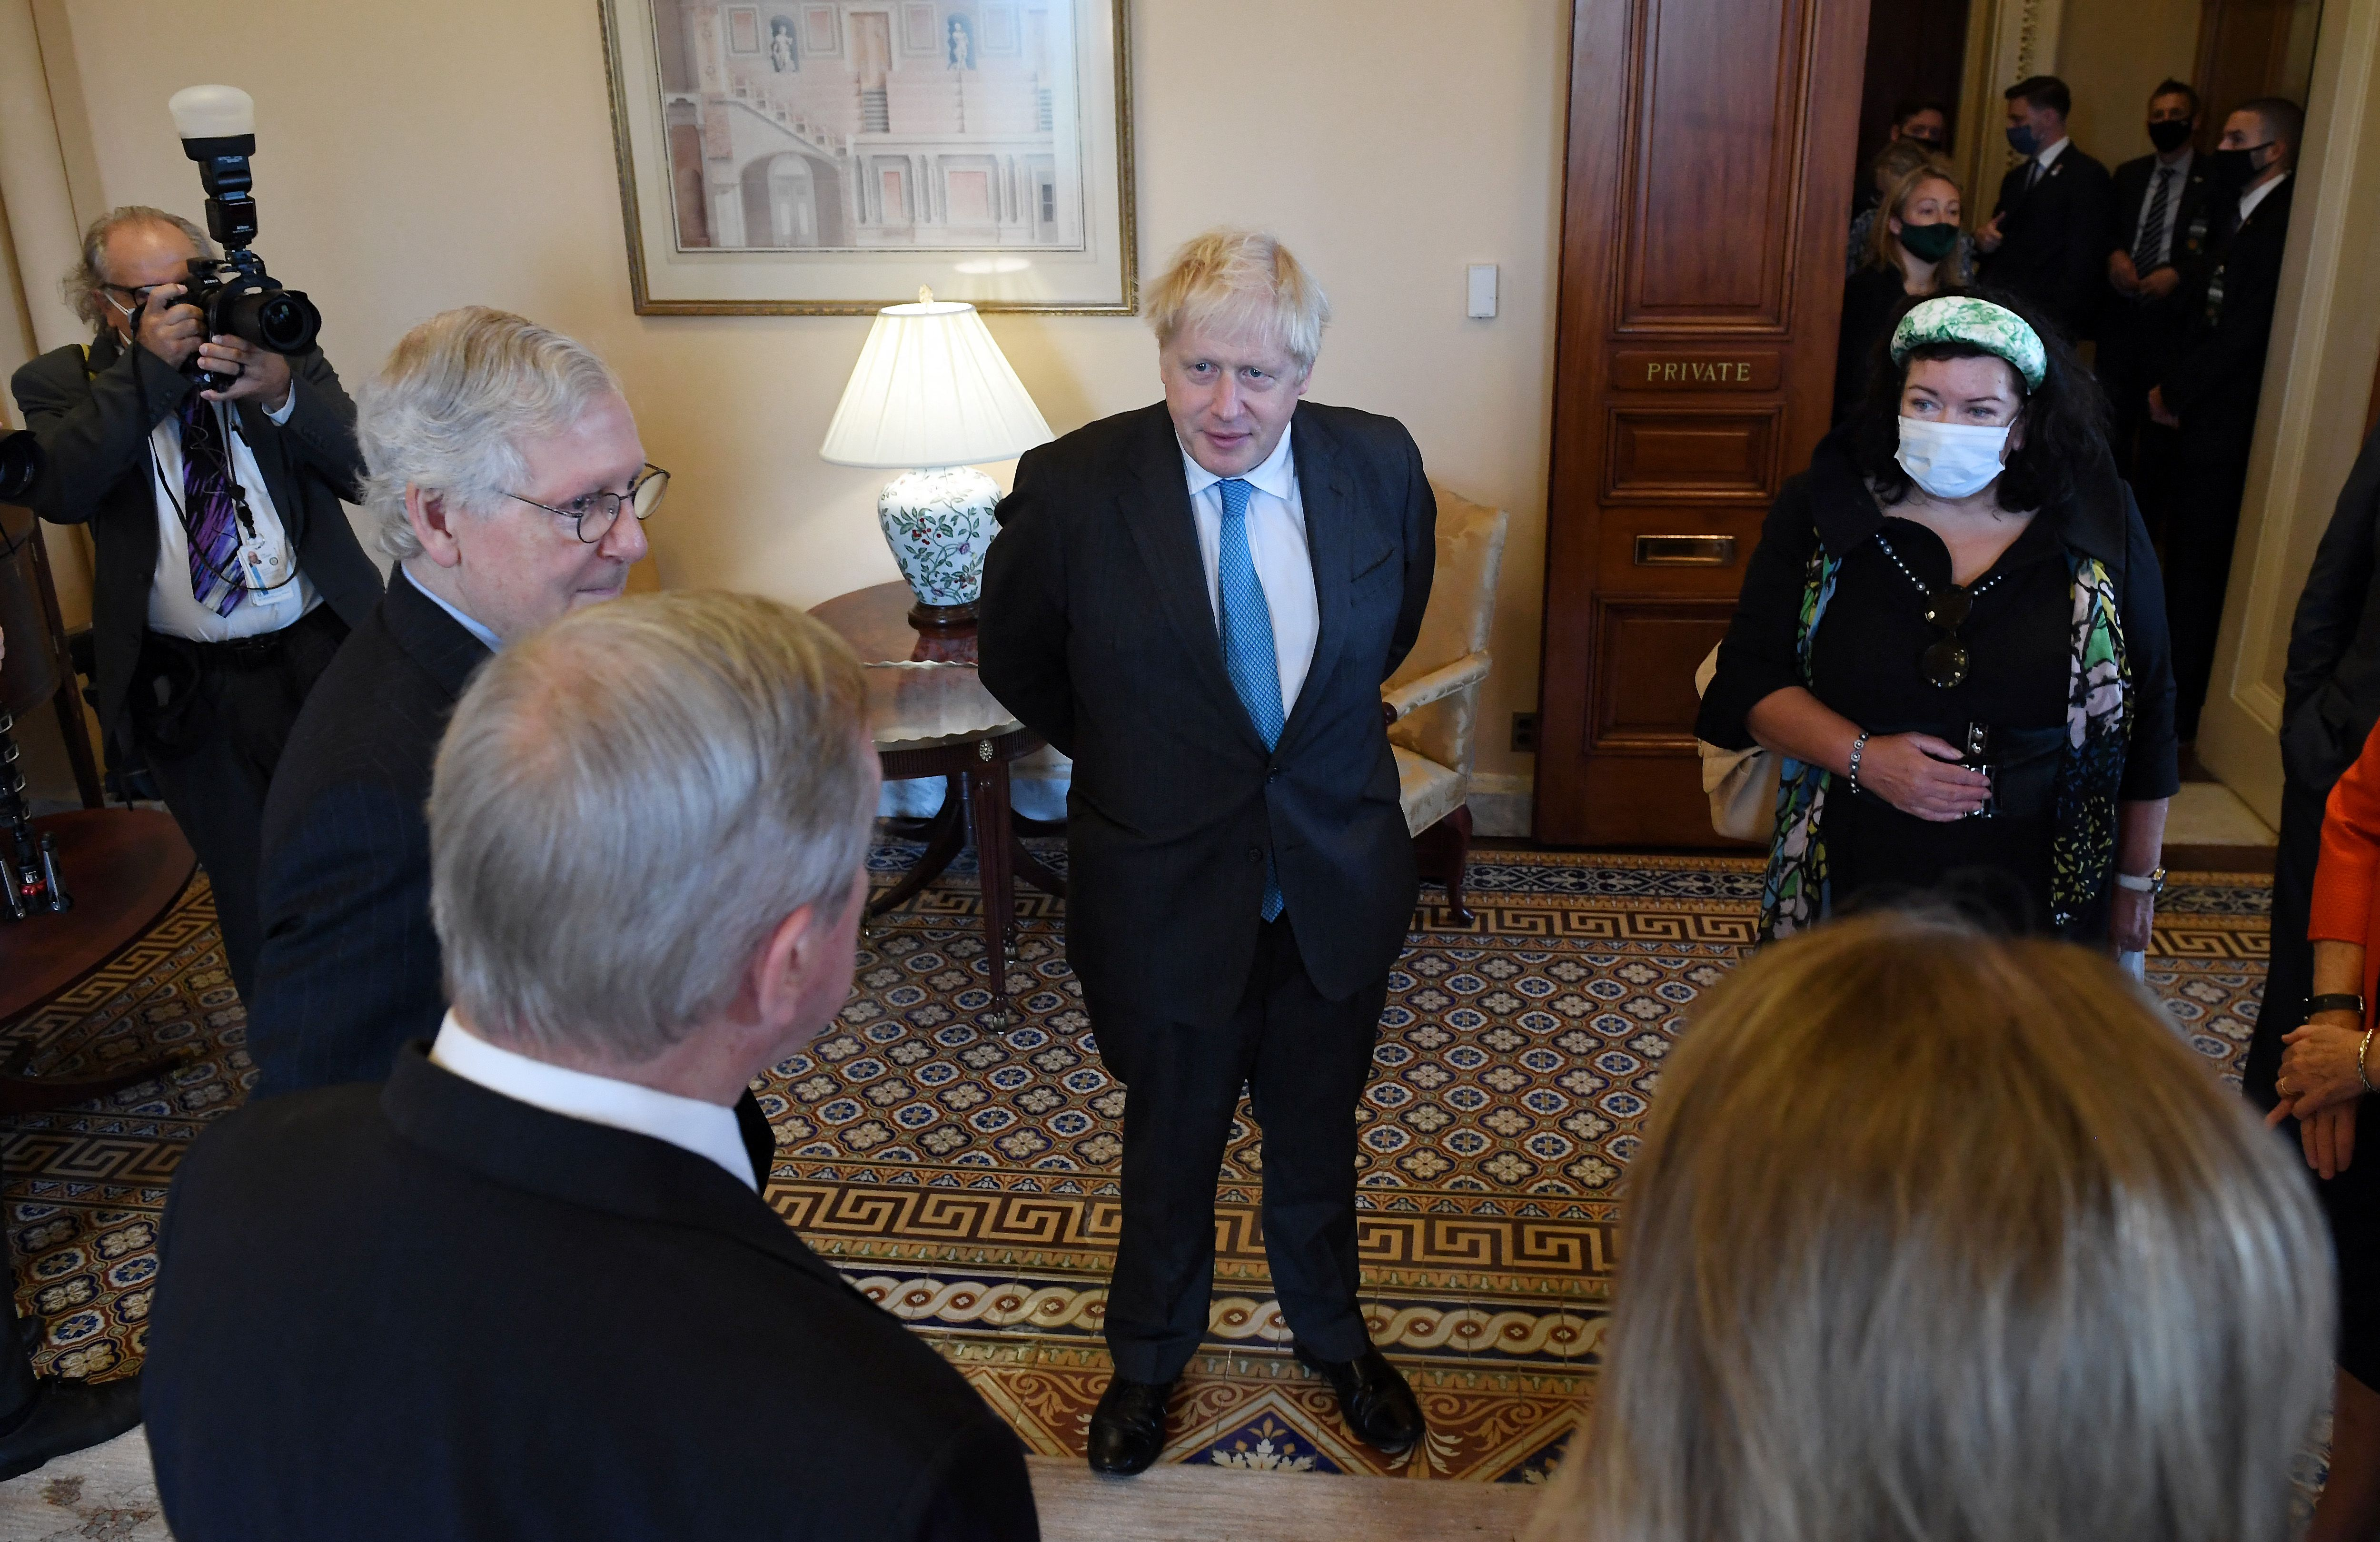 British Prime Minister Boris Johnson (center) meets with Senators including Senate Minority Leader Mitch McConnell (R-Ky.) (left) during a visit to the US Capitol on September 22, 2021 in Washington, D.C. (Photo by OLIVIER DOULIERY/AFP via Getty Images)